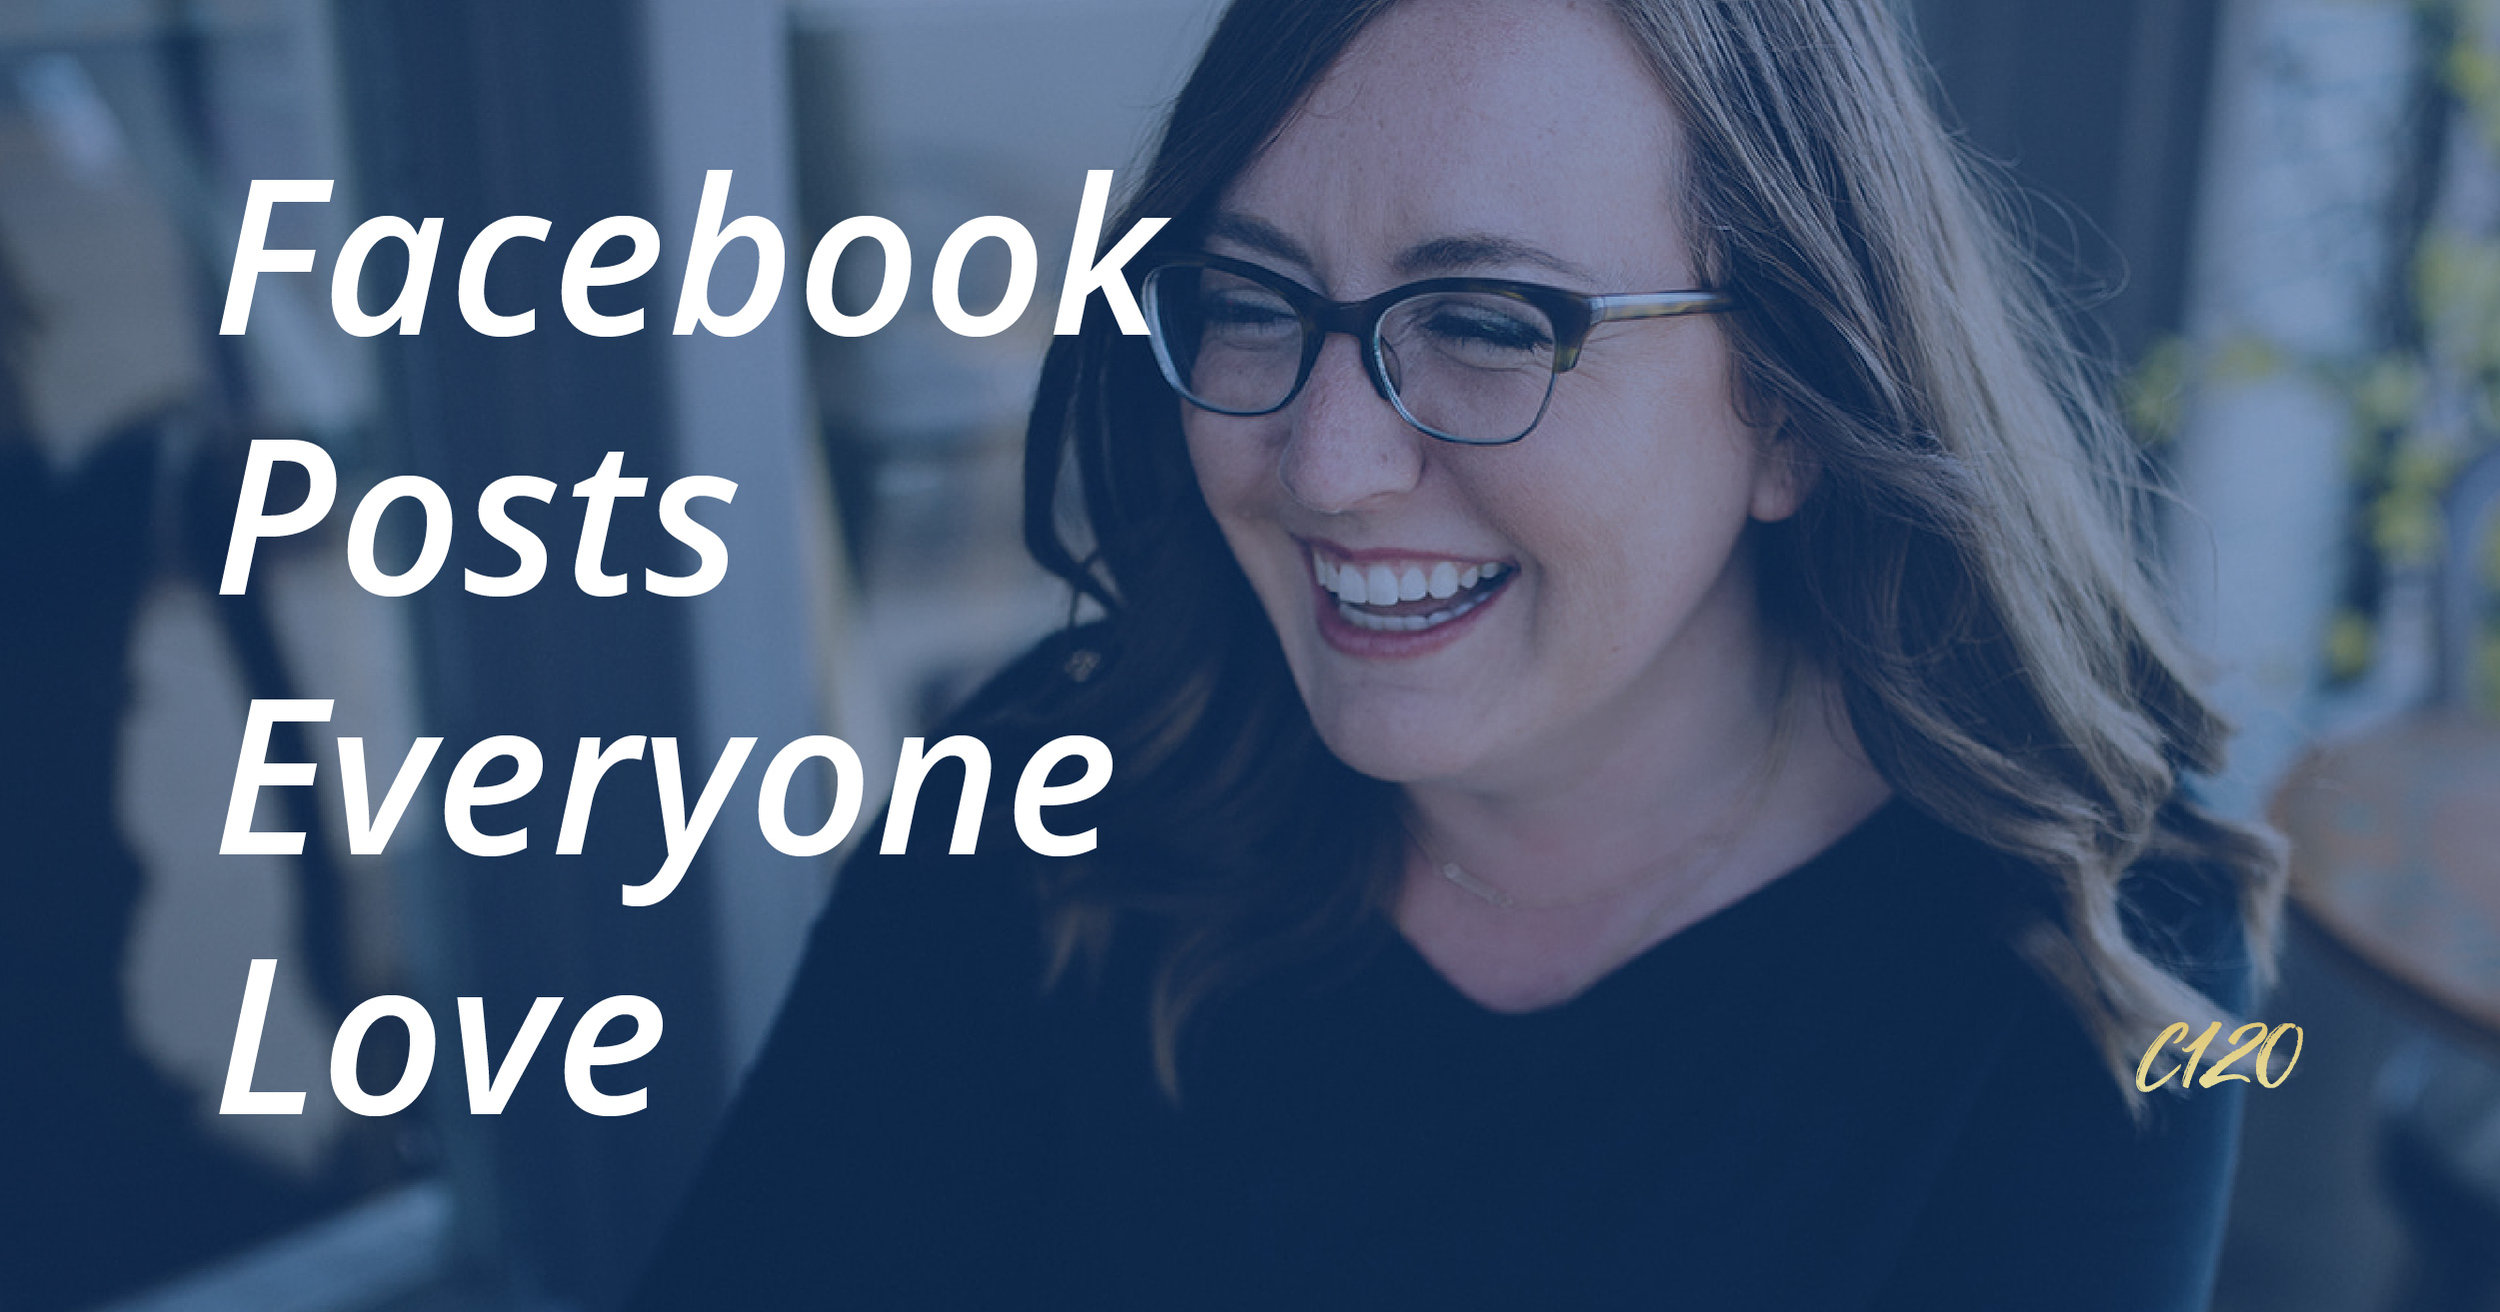 Facebook Posts Everyone Love by Current 120, Traverse City's website design and branding agency.